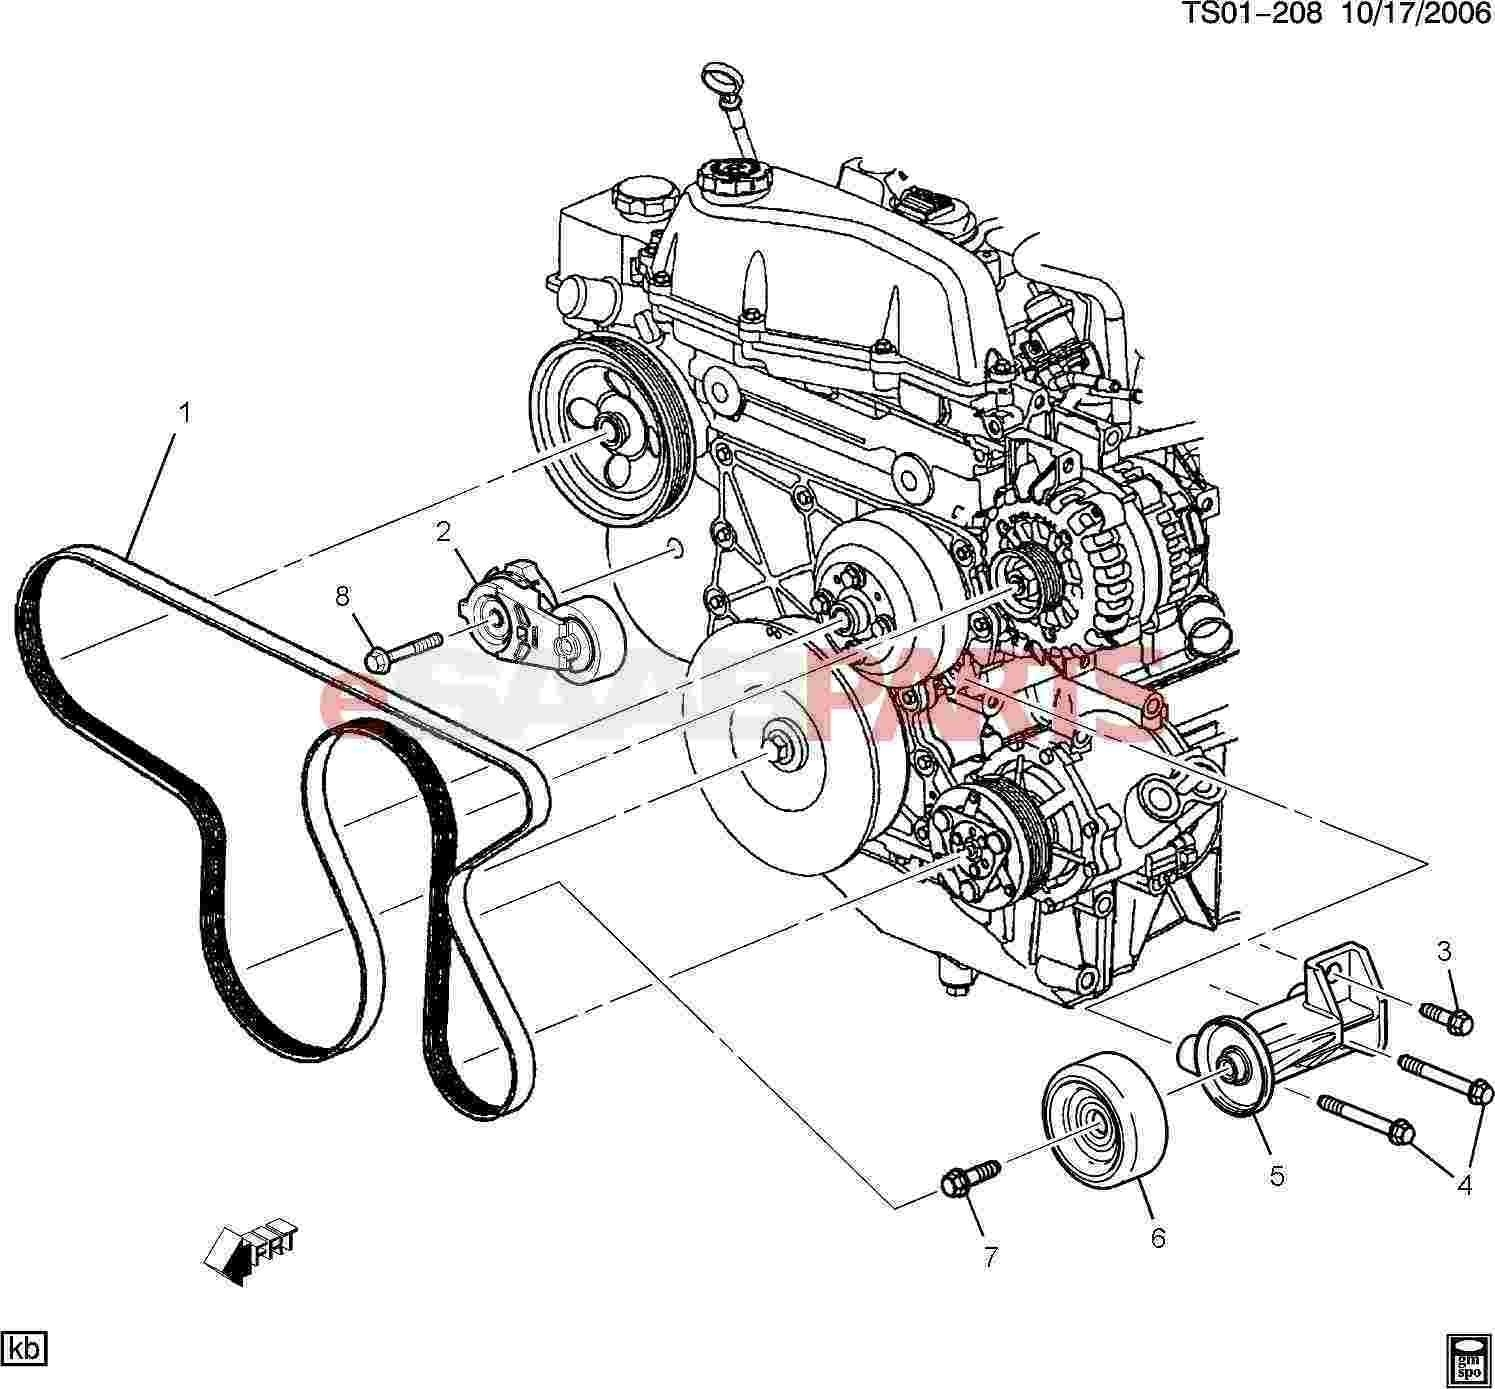 1995 Corolla Wiring Diagram